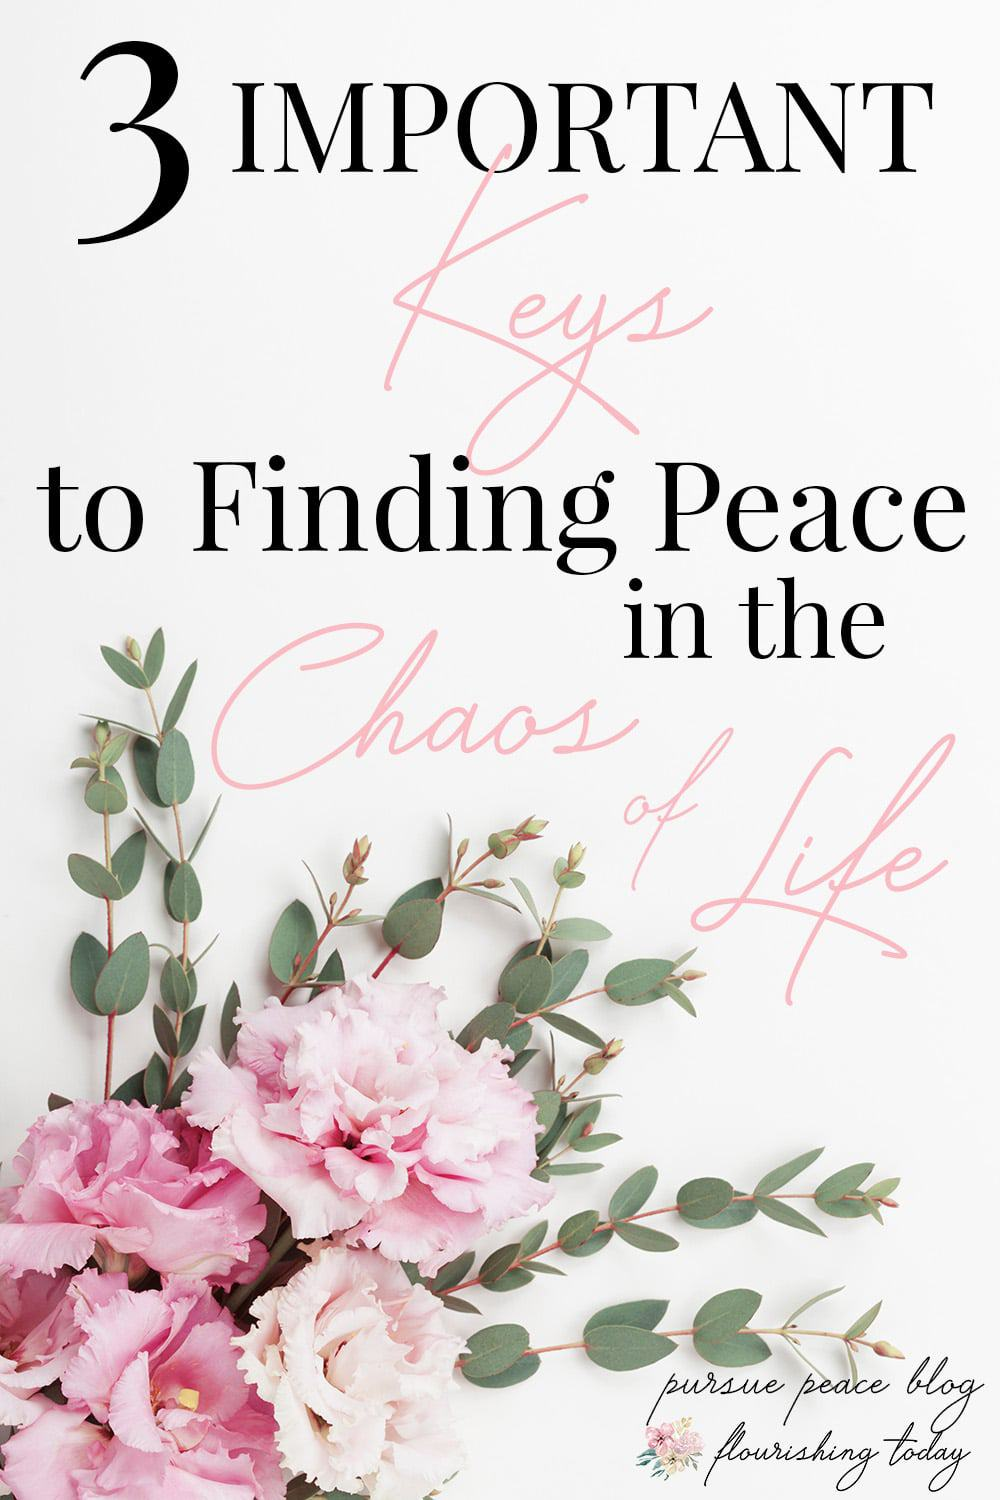 Does your life feel chaotic and out of control? When life gets busy the first thing to go can be our peace. Here's 3 keys to finding peace in the chaos. #peace #chaos #findingpeace #overwhelm